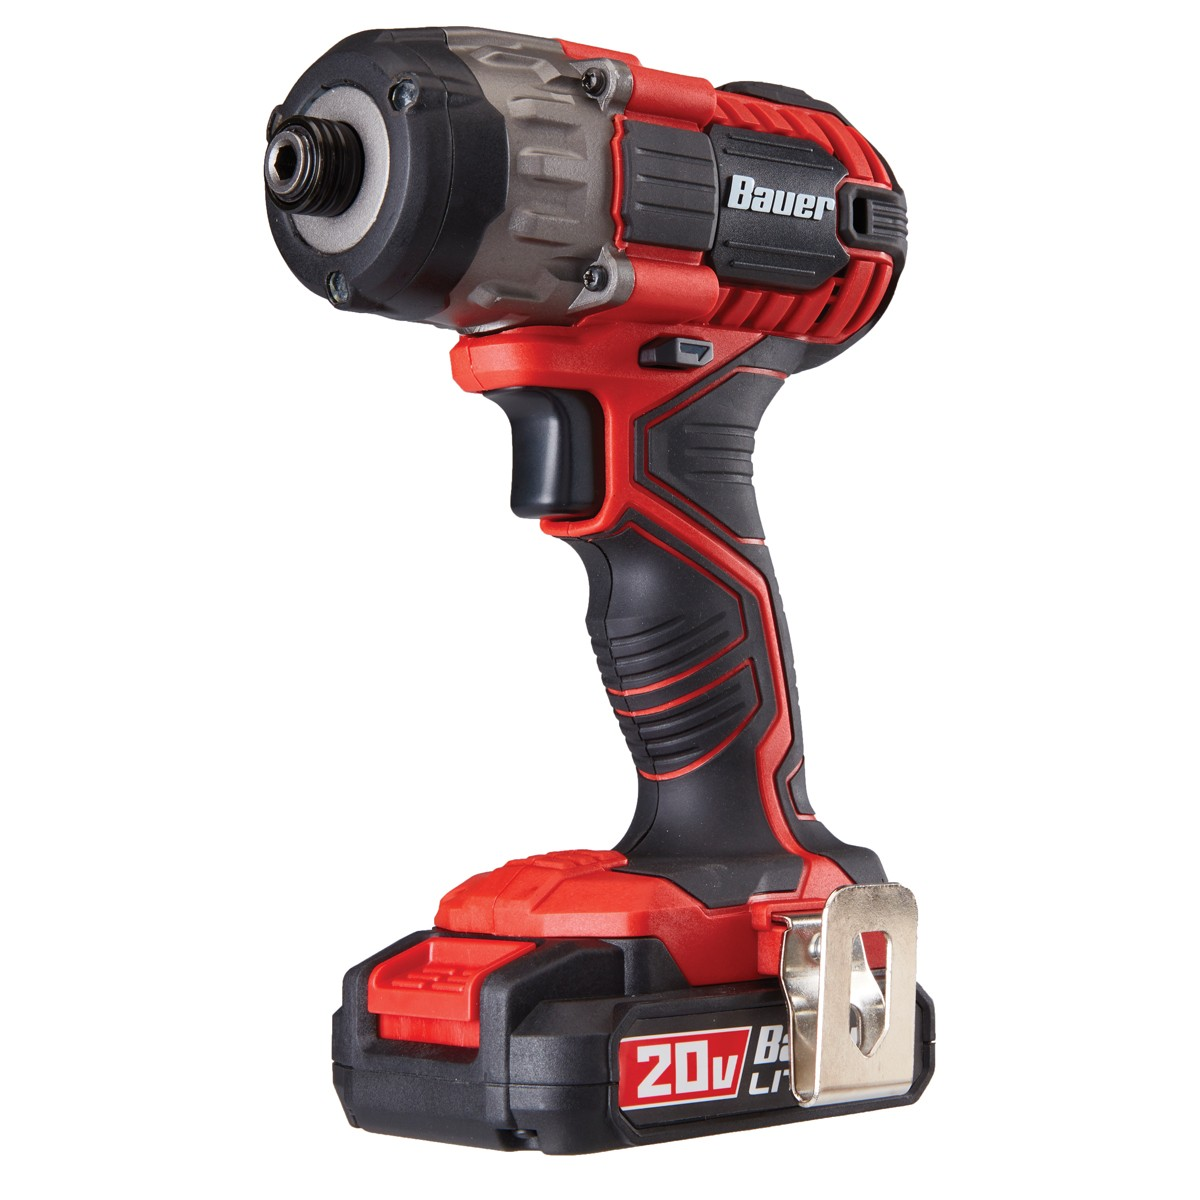 New Harbor Freight Cordless Tools - Lithium 20V Bauer